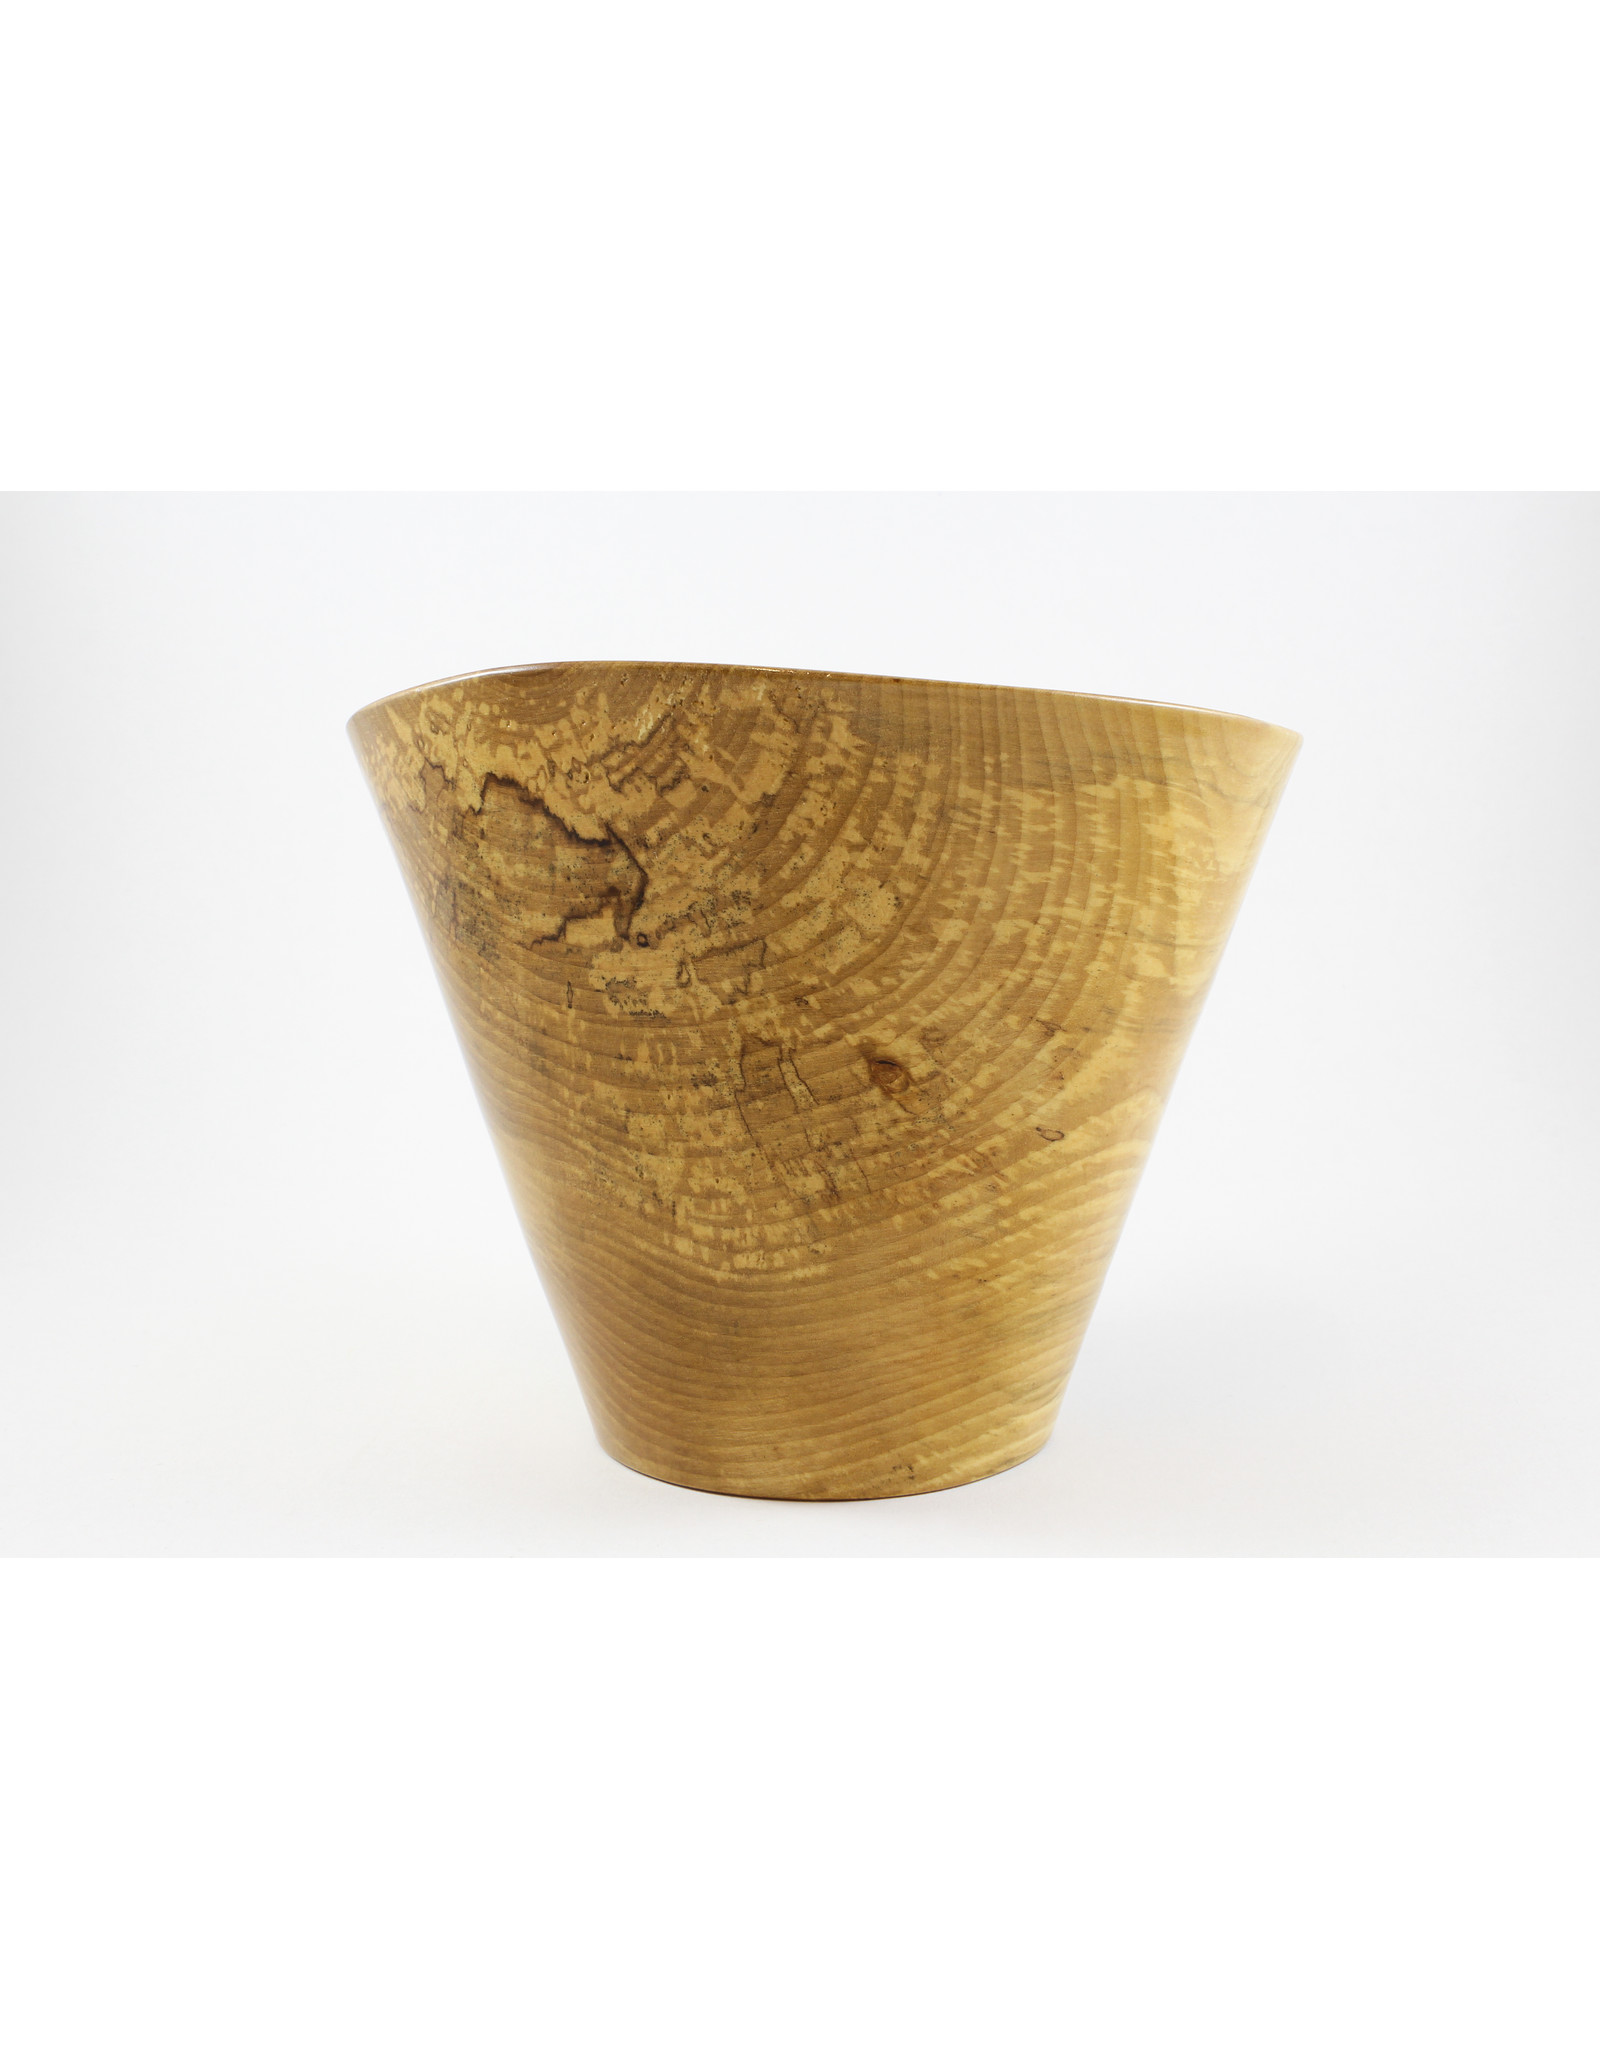 phil jones Tall Spalted Birch Bowl by The Bowl Guy